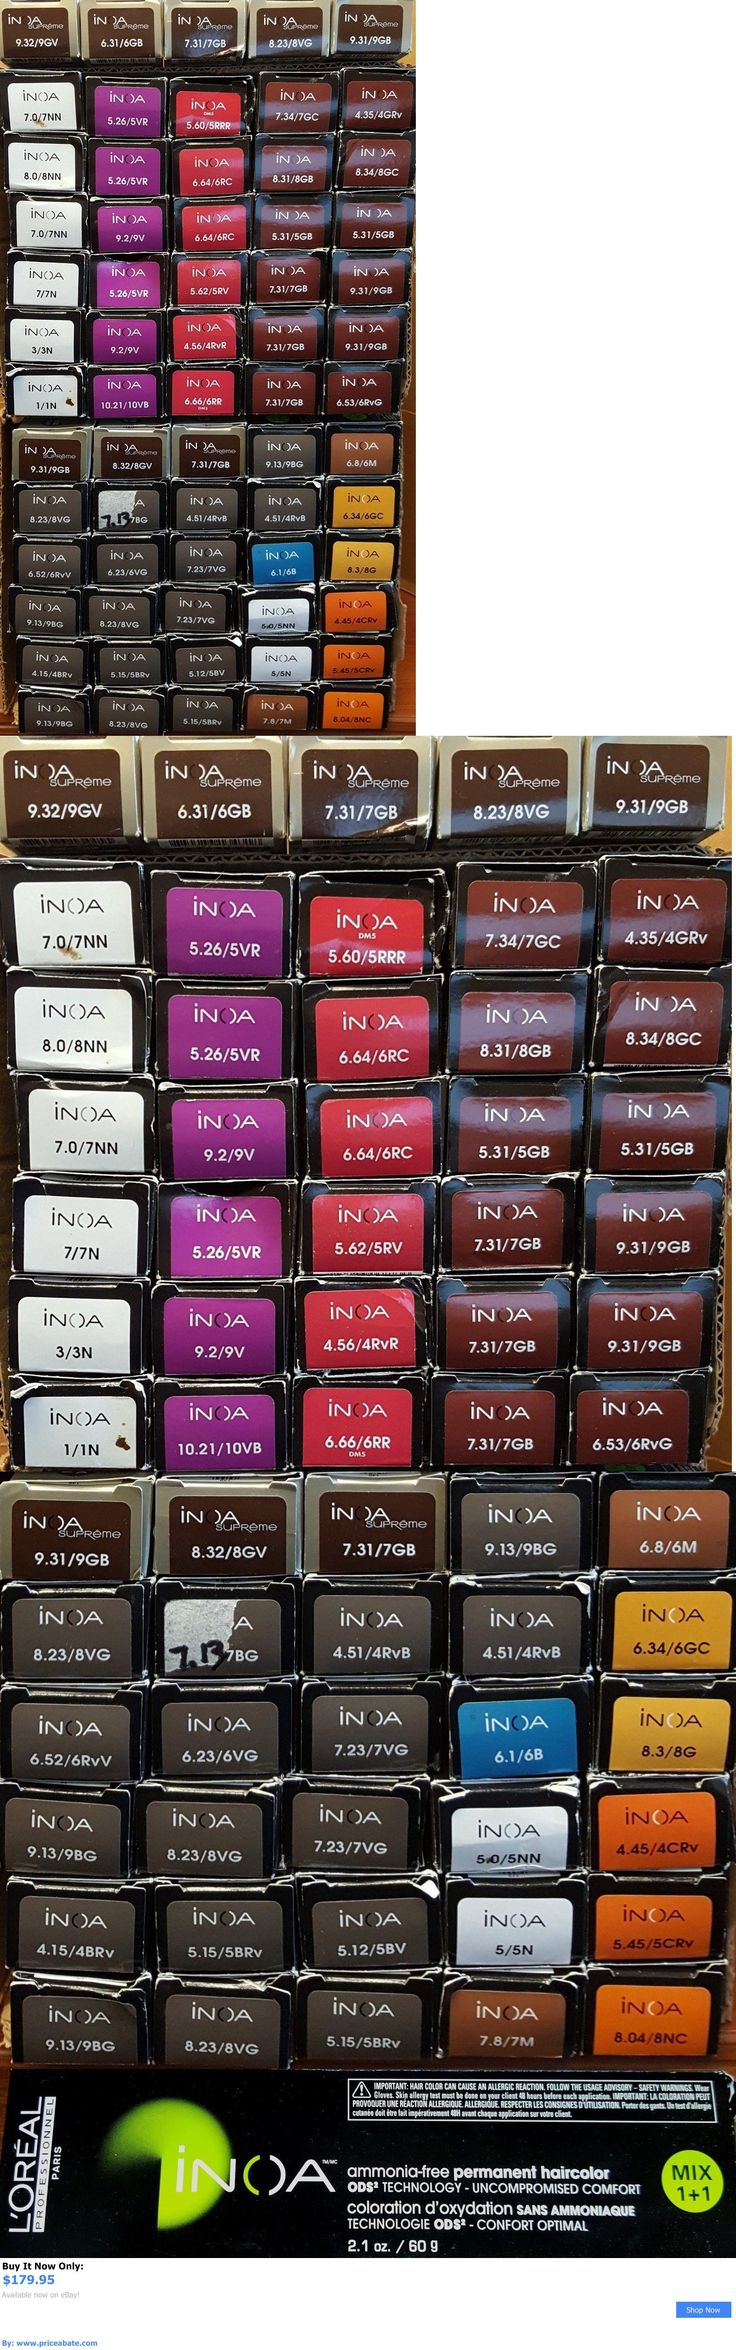 Hair Color: Loreal Inoa Permanent Hair Color Imperfects (Lot Of 65) 2.1 Oz. BUY IT NOW ONLY: $179.95 #priceabateHairColor OR #priceabate